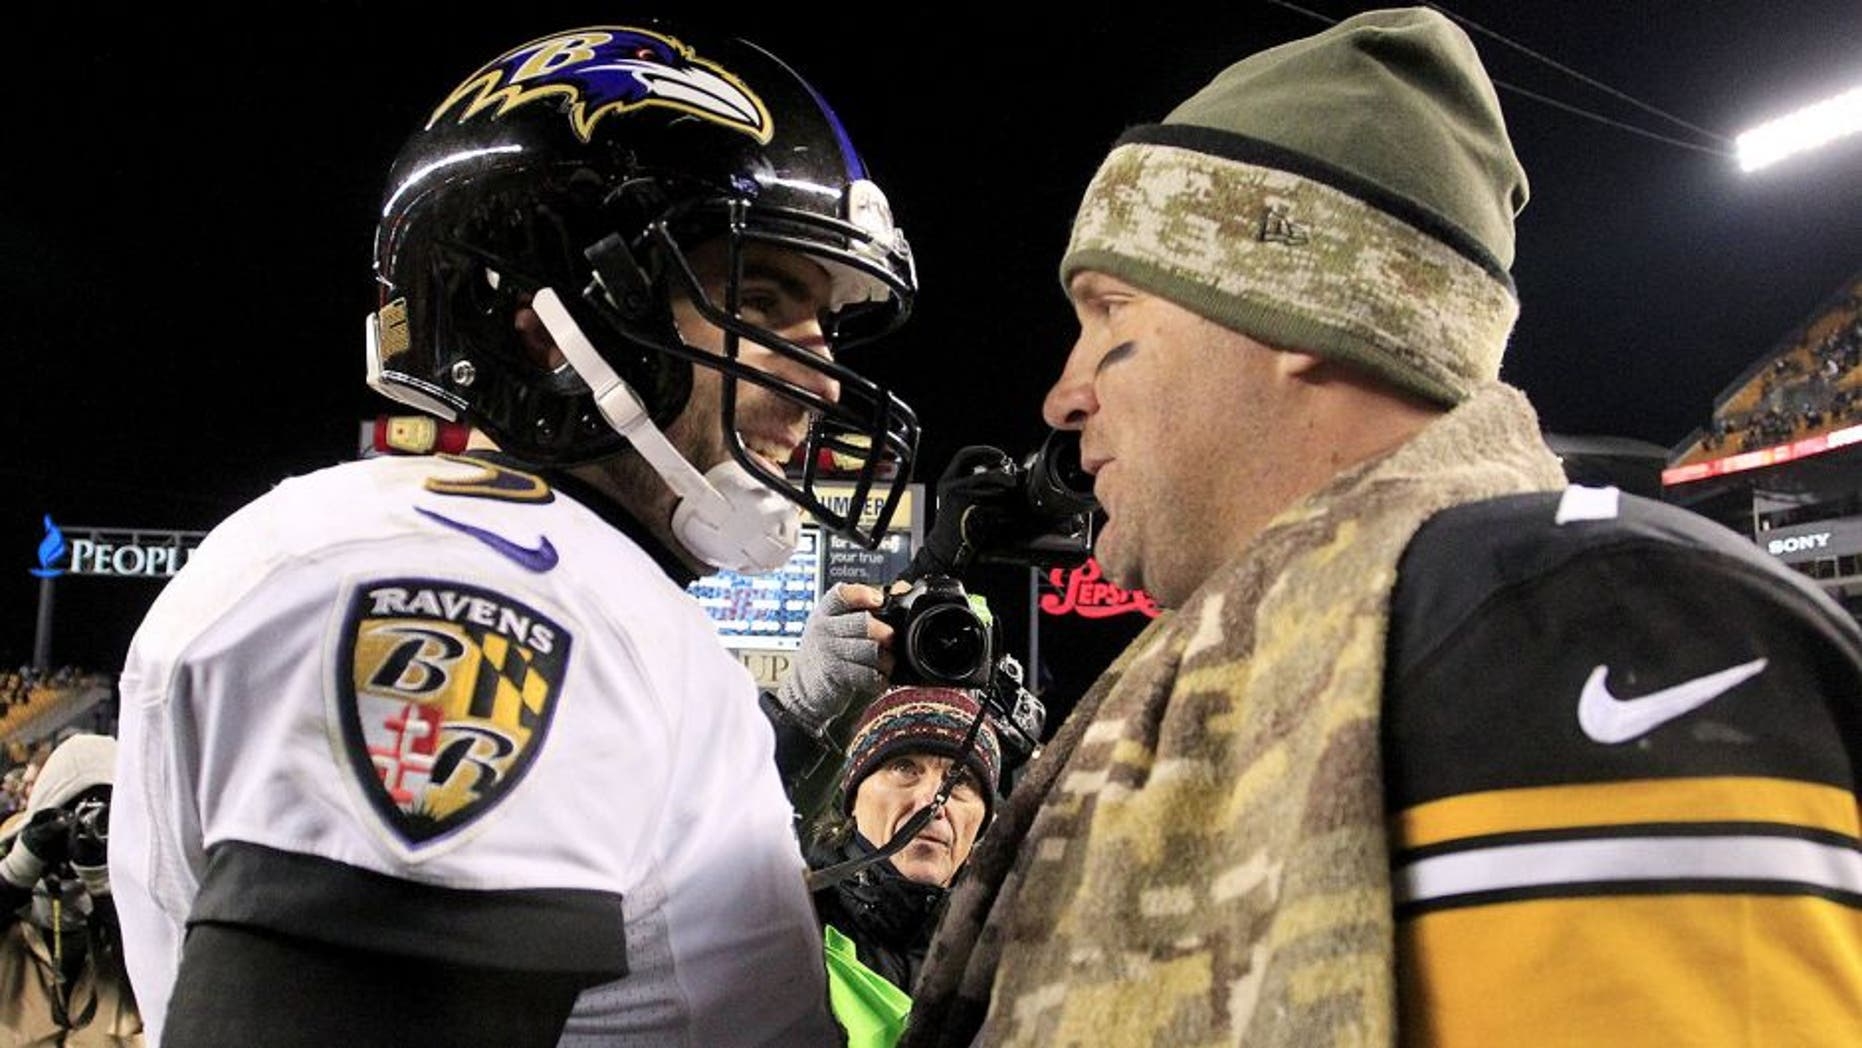 Nov 2, 2014; Pittsburgh, PA, USA; Baltimore Ravens quarterback Joe Flacco (left) and Pittsburgh Steelers quarterback Ben Roethlisberger (right) meet at mid-field after their game at Heinz Field. The Steelers won 43-23. Mandatory Credit: Charles LeClaire-USA TODAY Sports